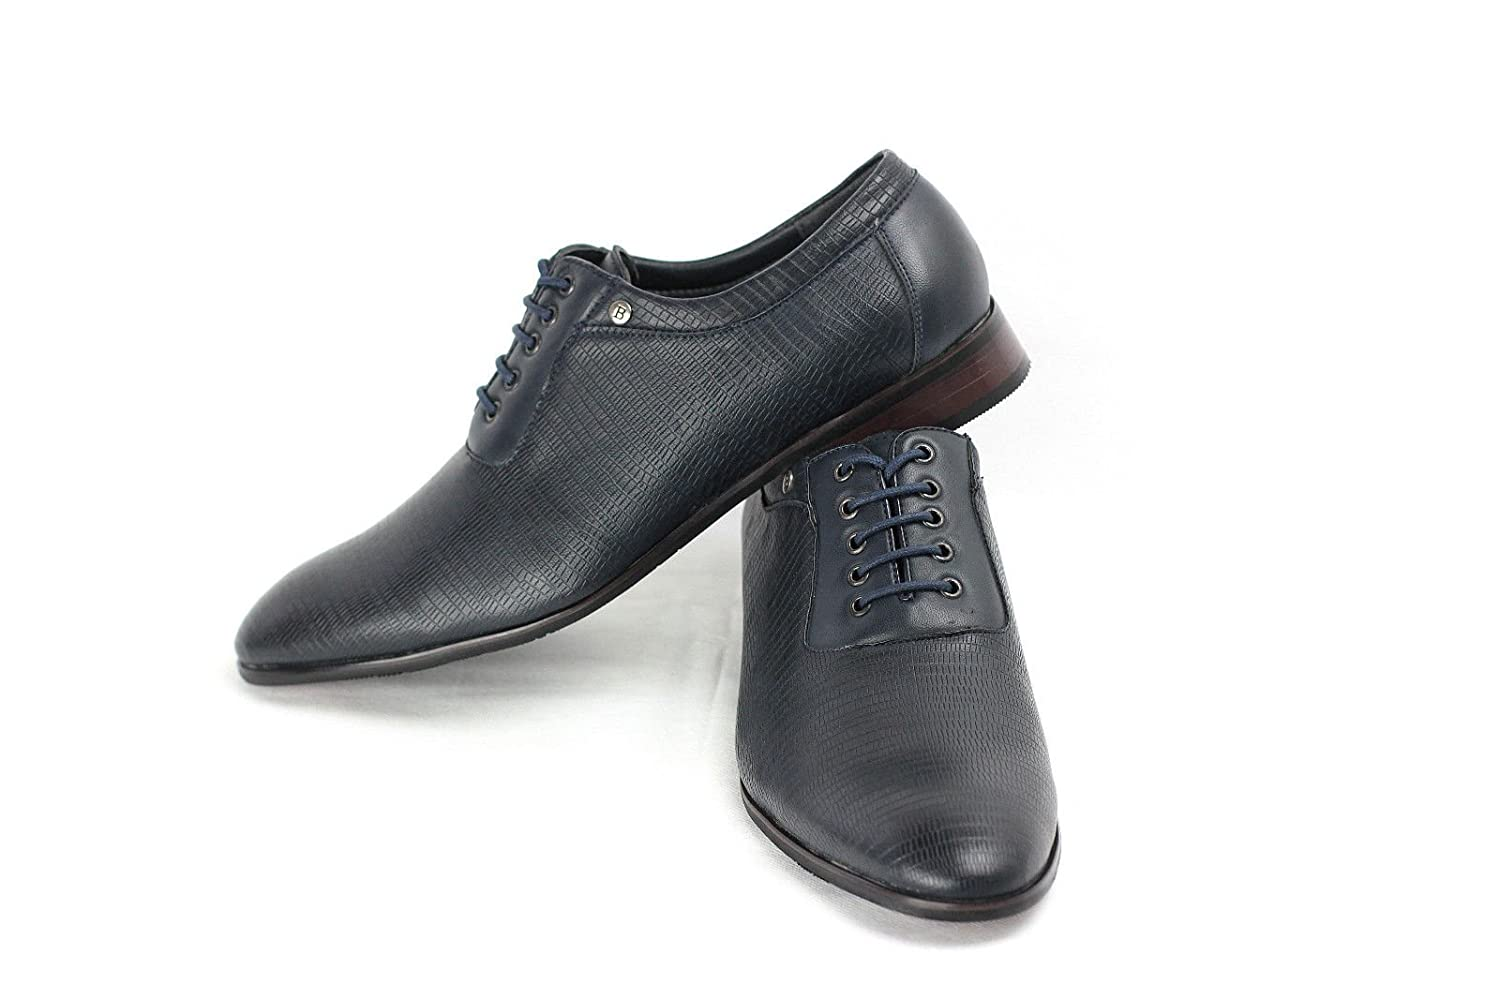 7485a236d51362 Chaussures Homme Mode Cuir Italien Look Style Oxford taille EU 23 7 8 9 10  11: Amazon.fr: Chaussures et Sacs